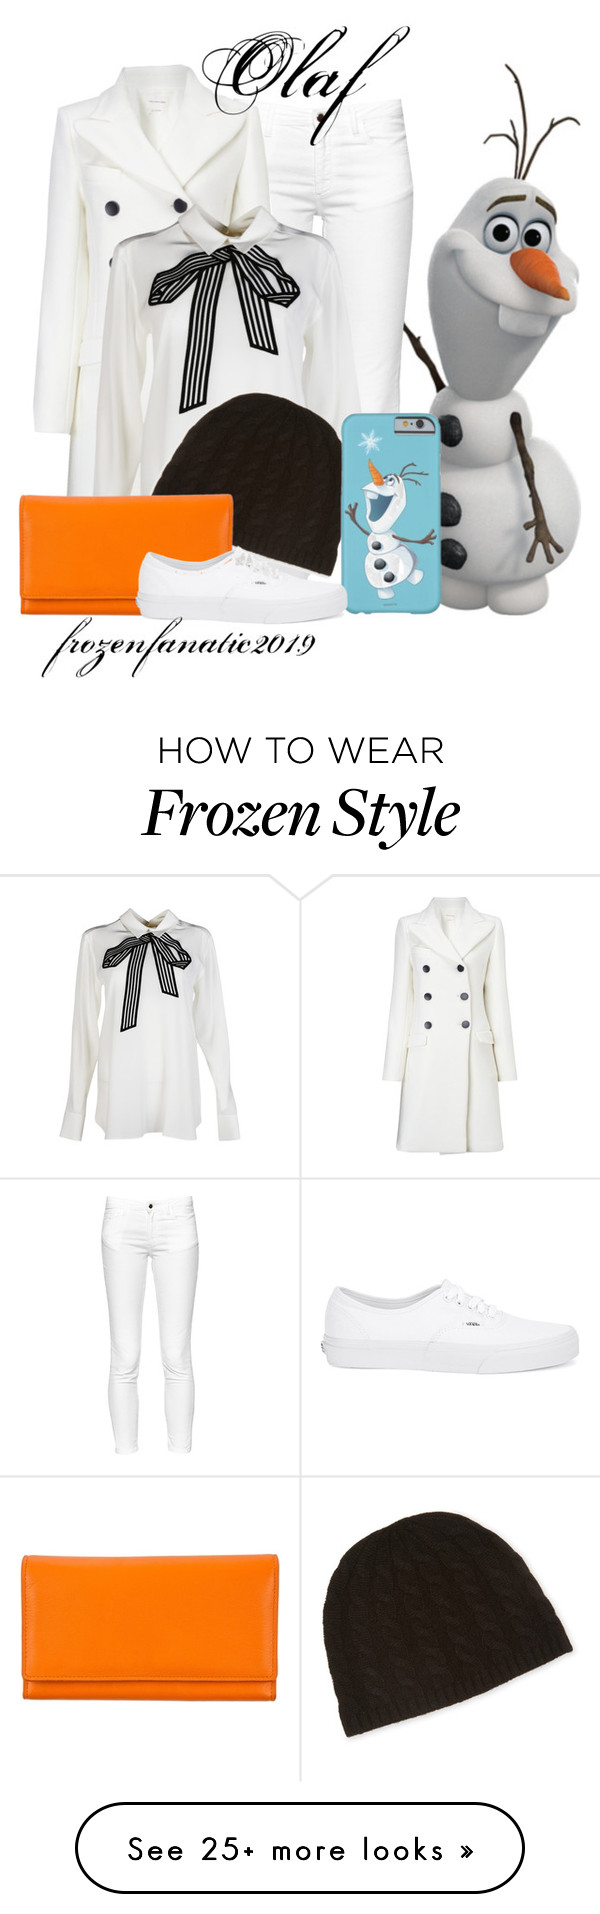 """""""Olaf"""" by frozenfanatic2019 on Polyvore featuring mode, French Connection, Étoile Isabel Marant, STELLA McCARTNEY, Qi Cashmere et Vans"""